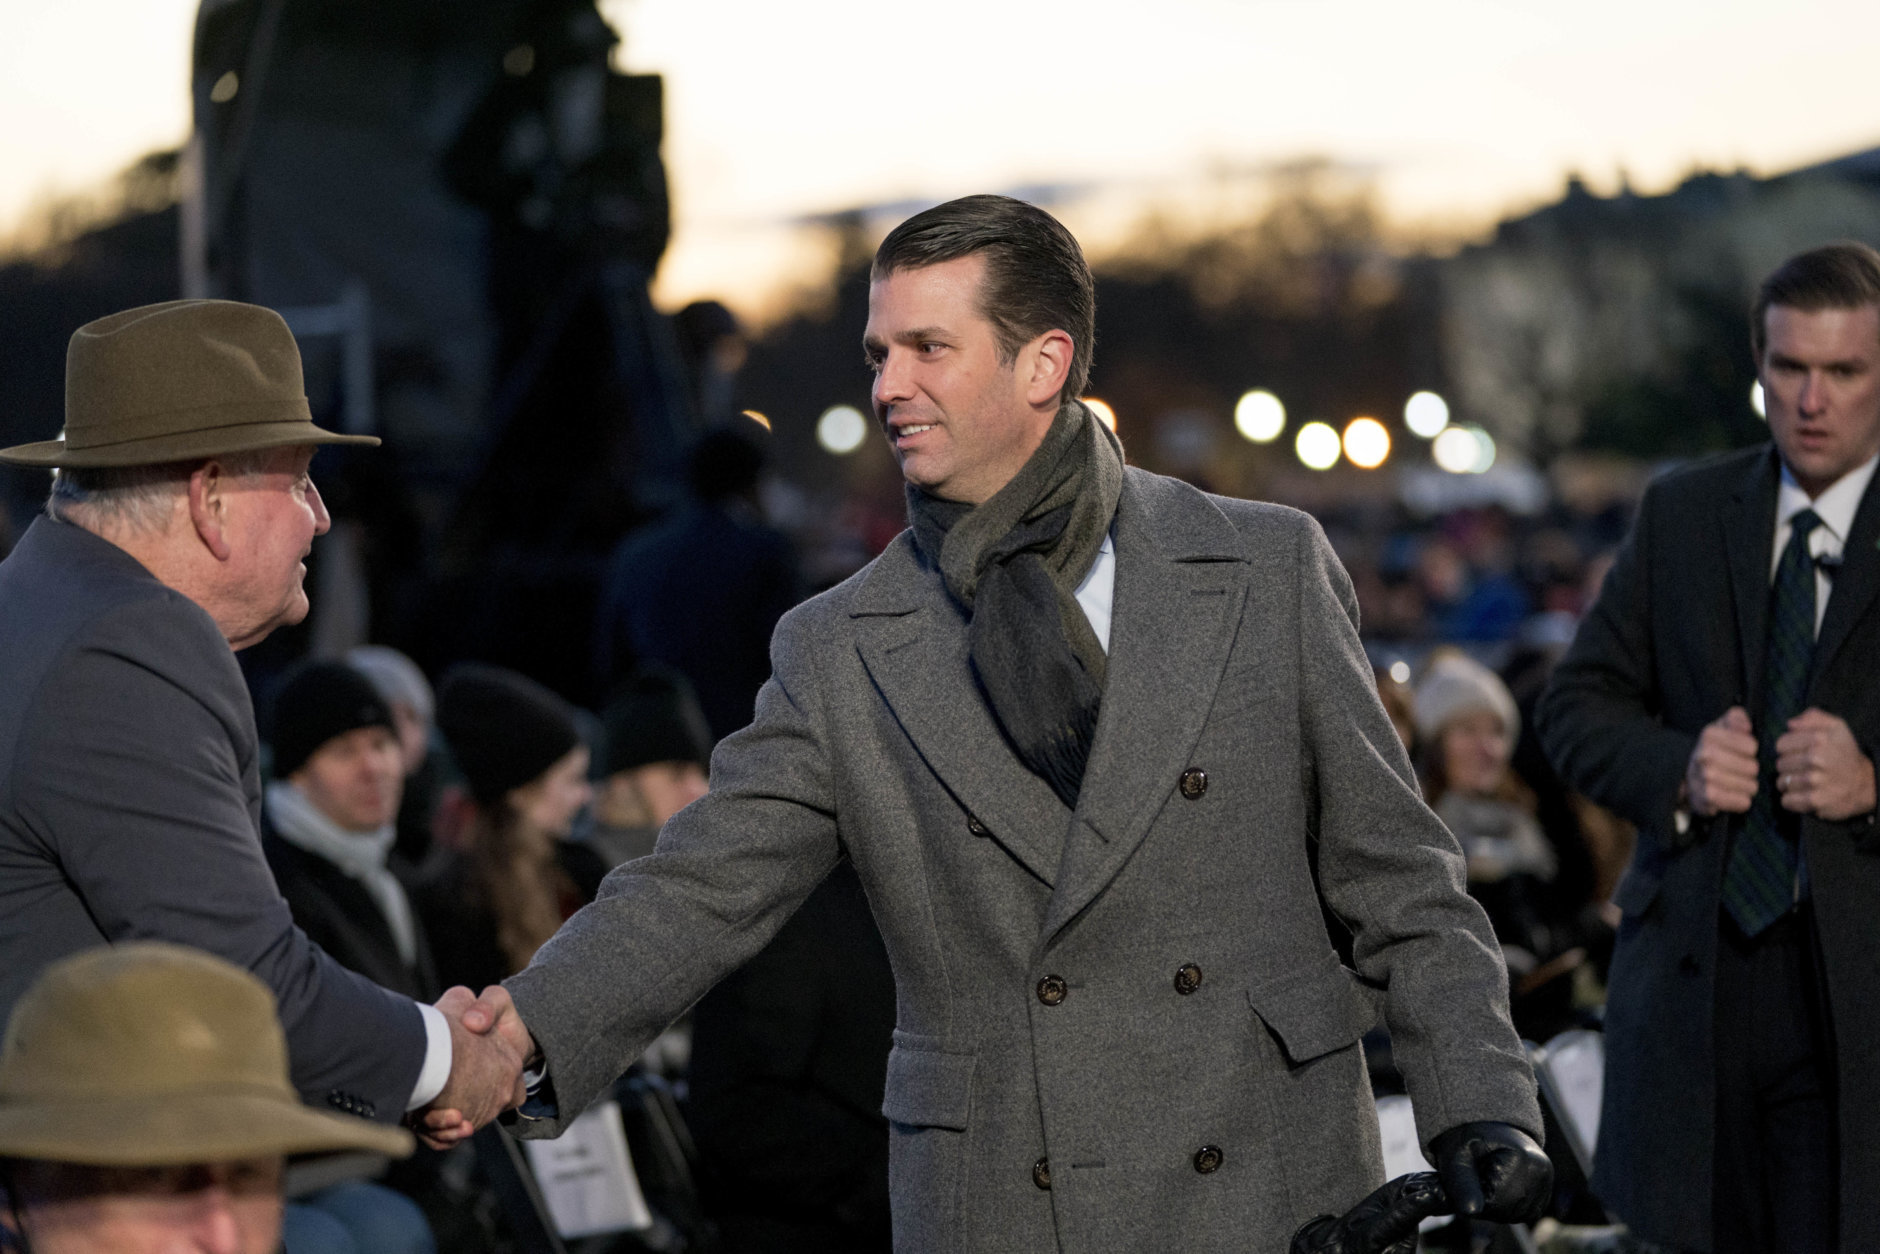 Donald Trump Jr. shakes hands with Agriculture Secretary Sonny Perdue, left, ahead of President Donald Trump and first lady Melania Trump for the National Christmas Tree lighting ceremony at the Ellipse near the White House in Washington, Wednesday, Nov. 28, 2018. (AP Photo/Andrew Harnik)